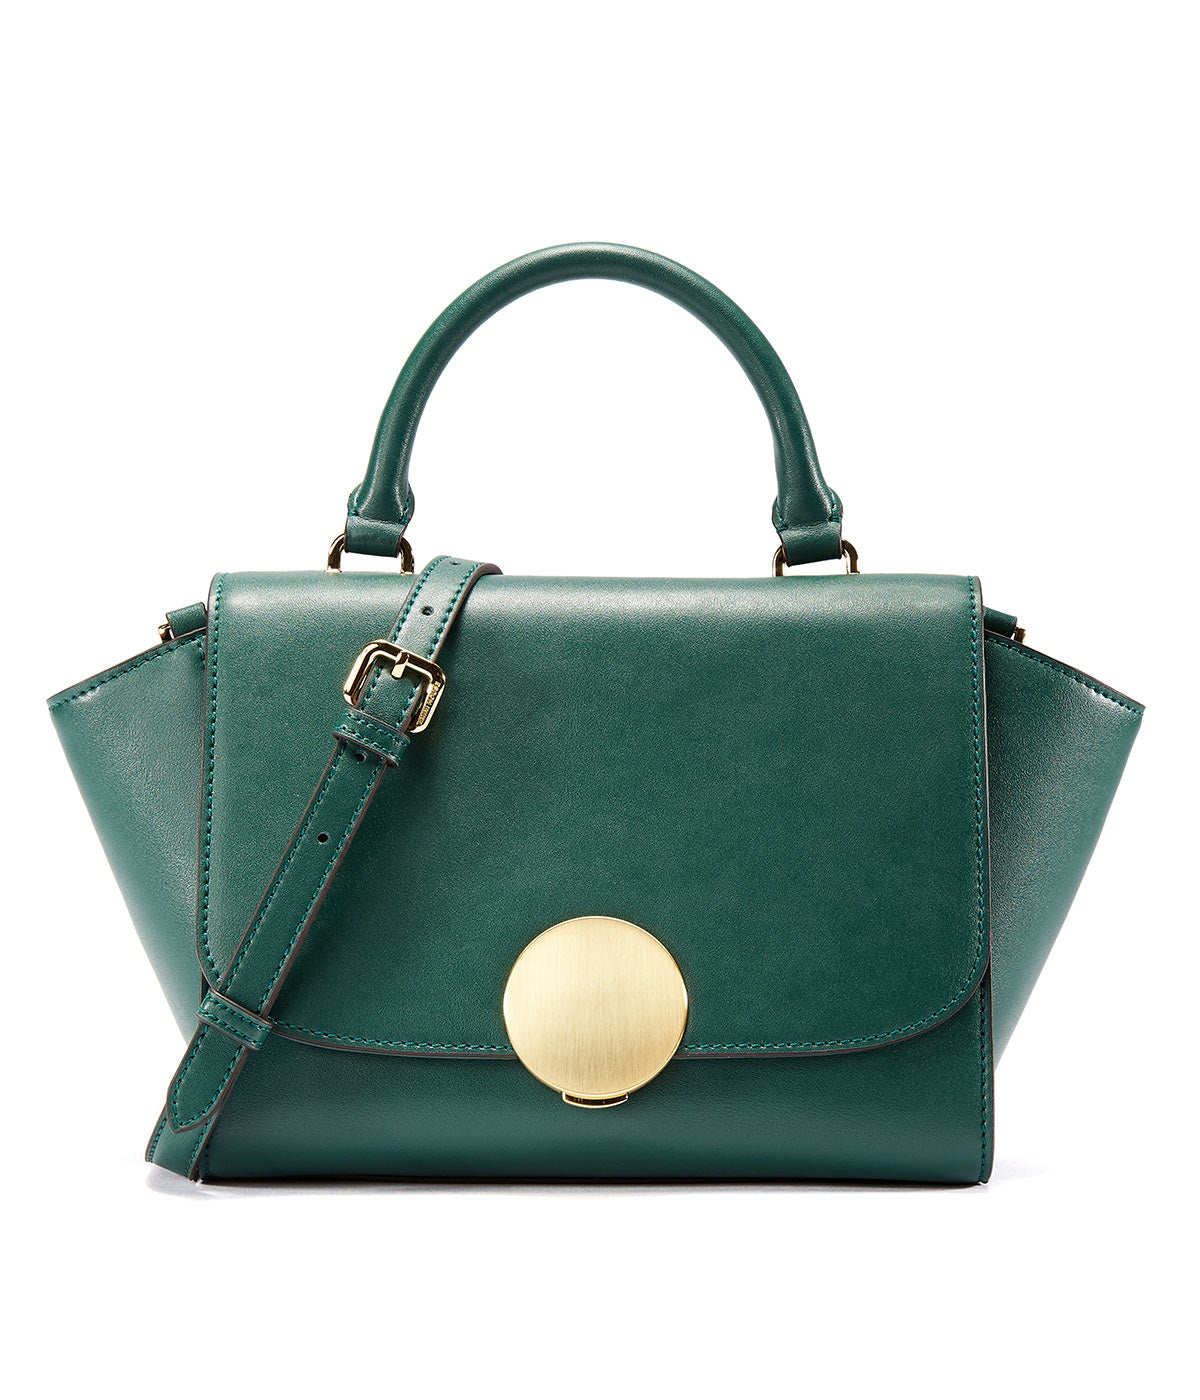 EMINI HOUSE Chic Trapeze Handle Bag with Magnetic Snap Women Handbag - EMINIHOUSE